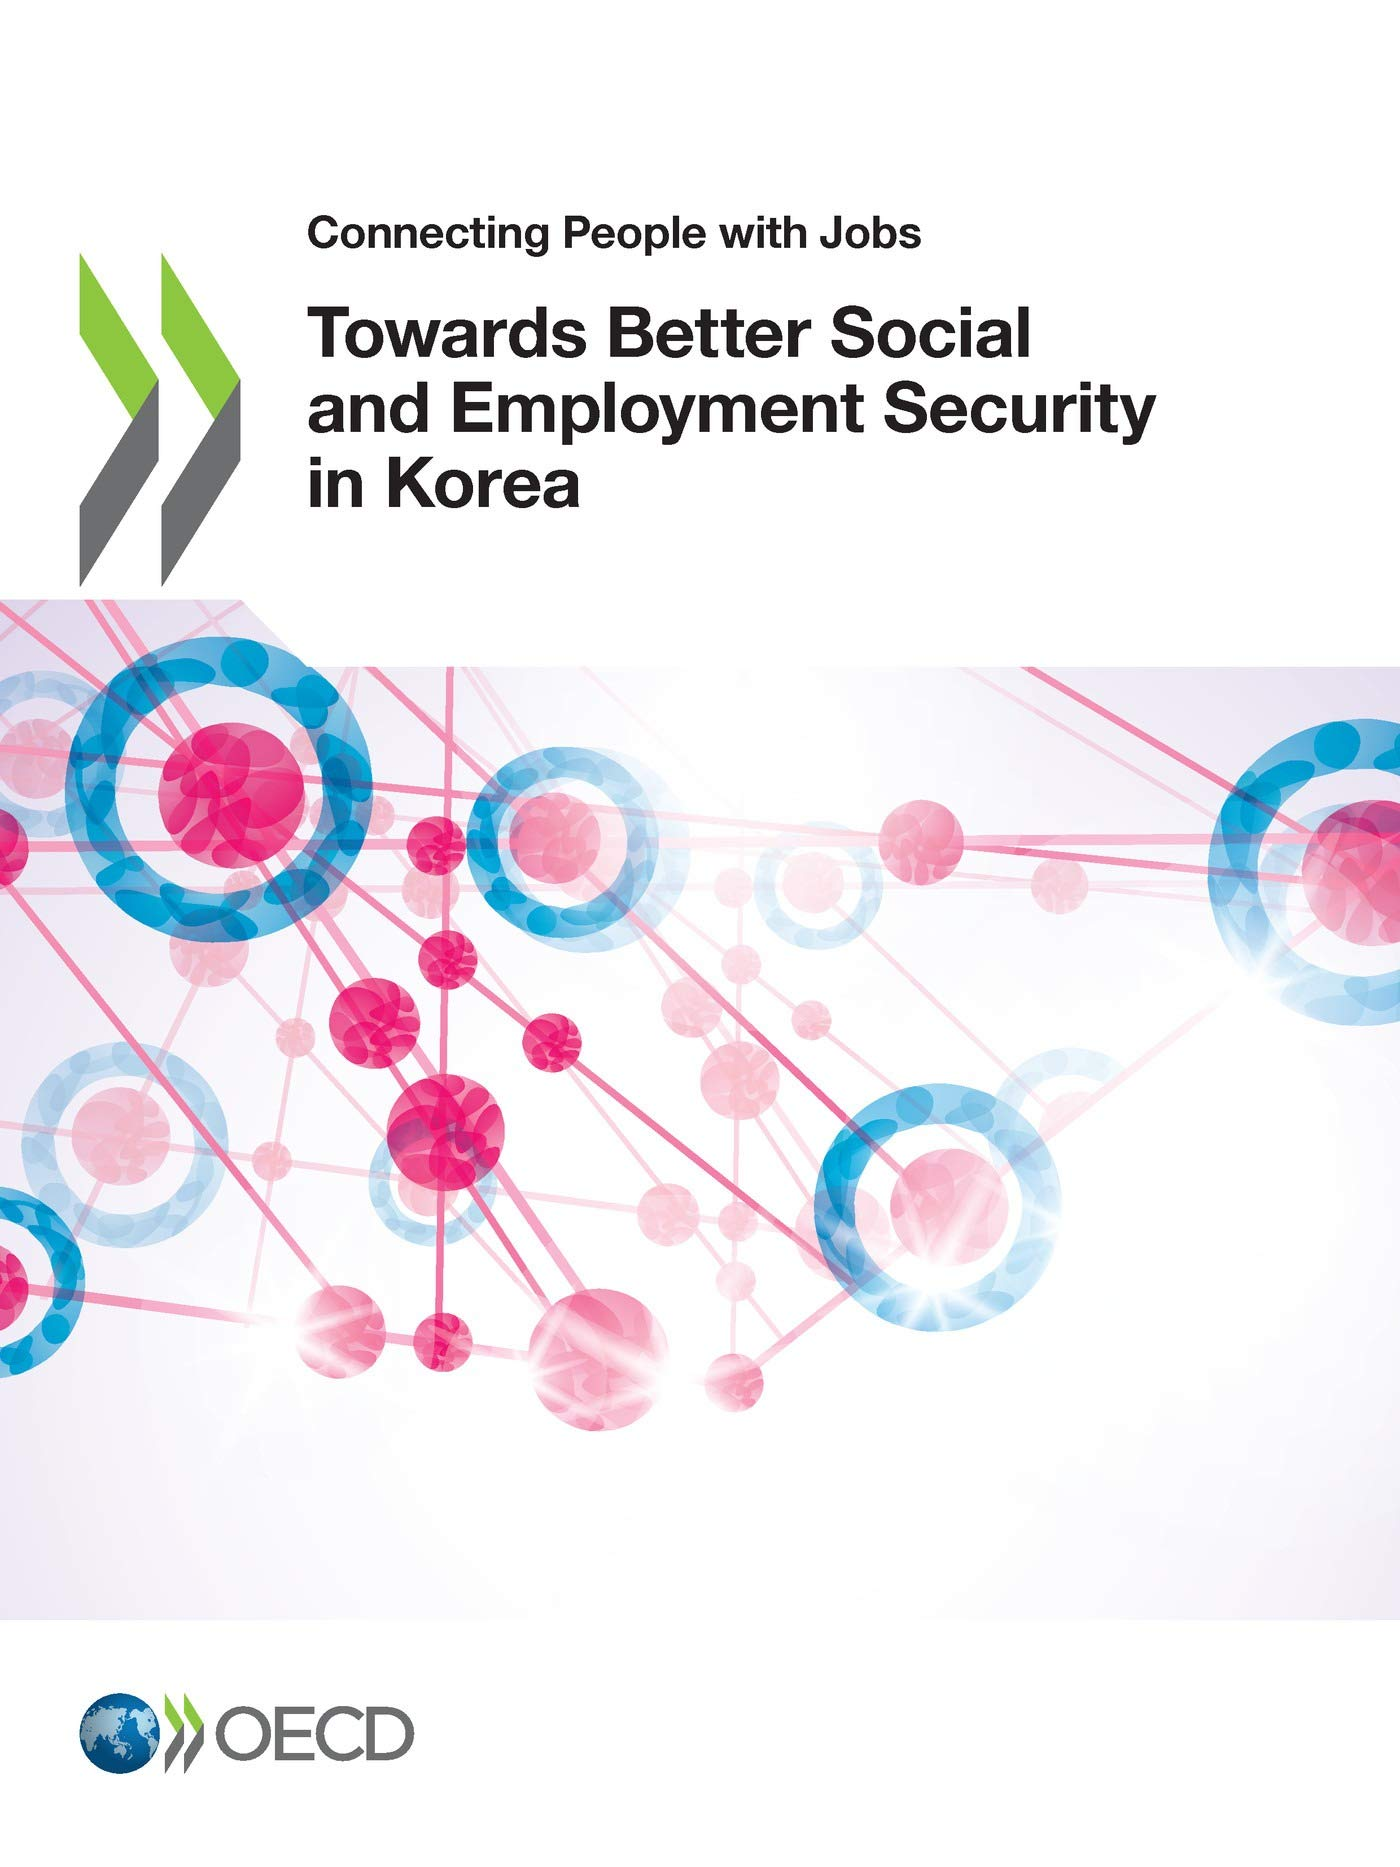 Towards Better Social and Employment Security in Korea (Connecting people with jobs)